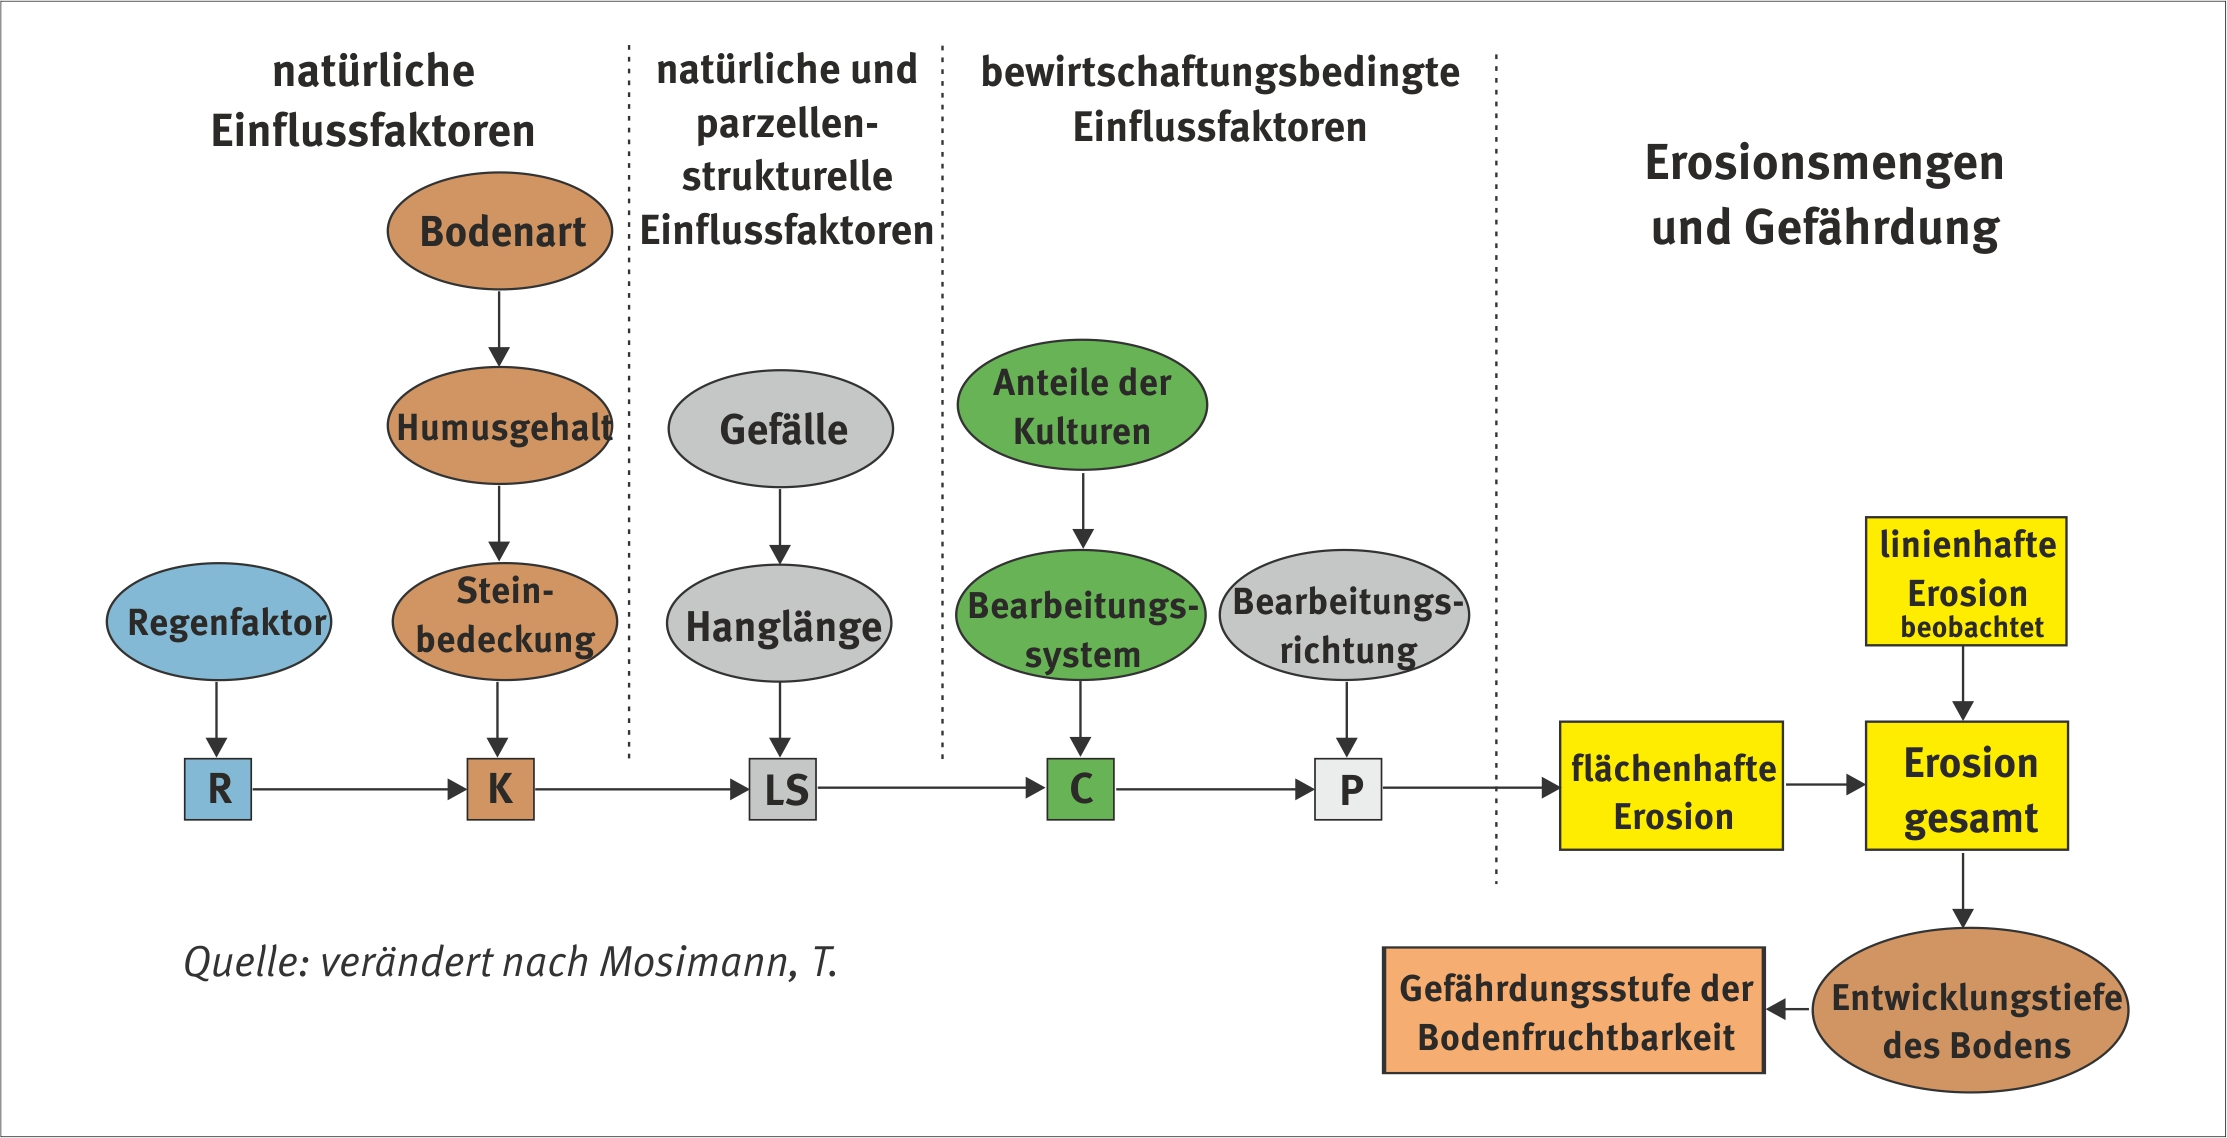 Erosion umweltbundesamt chart is showing factors influencing soil erosion caused by water sciox Gallery